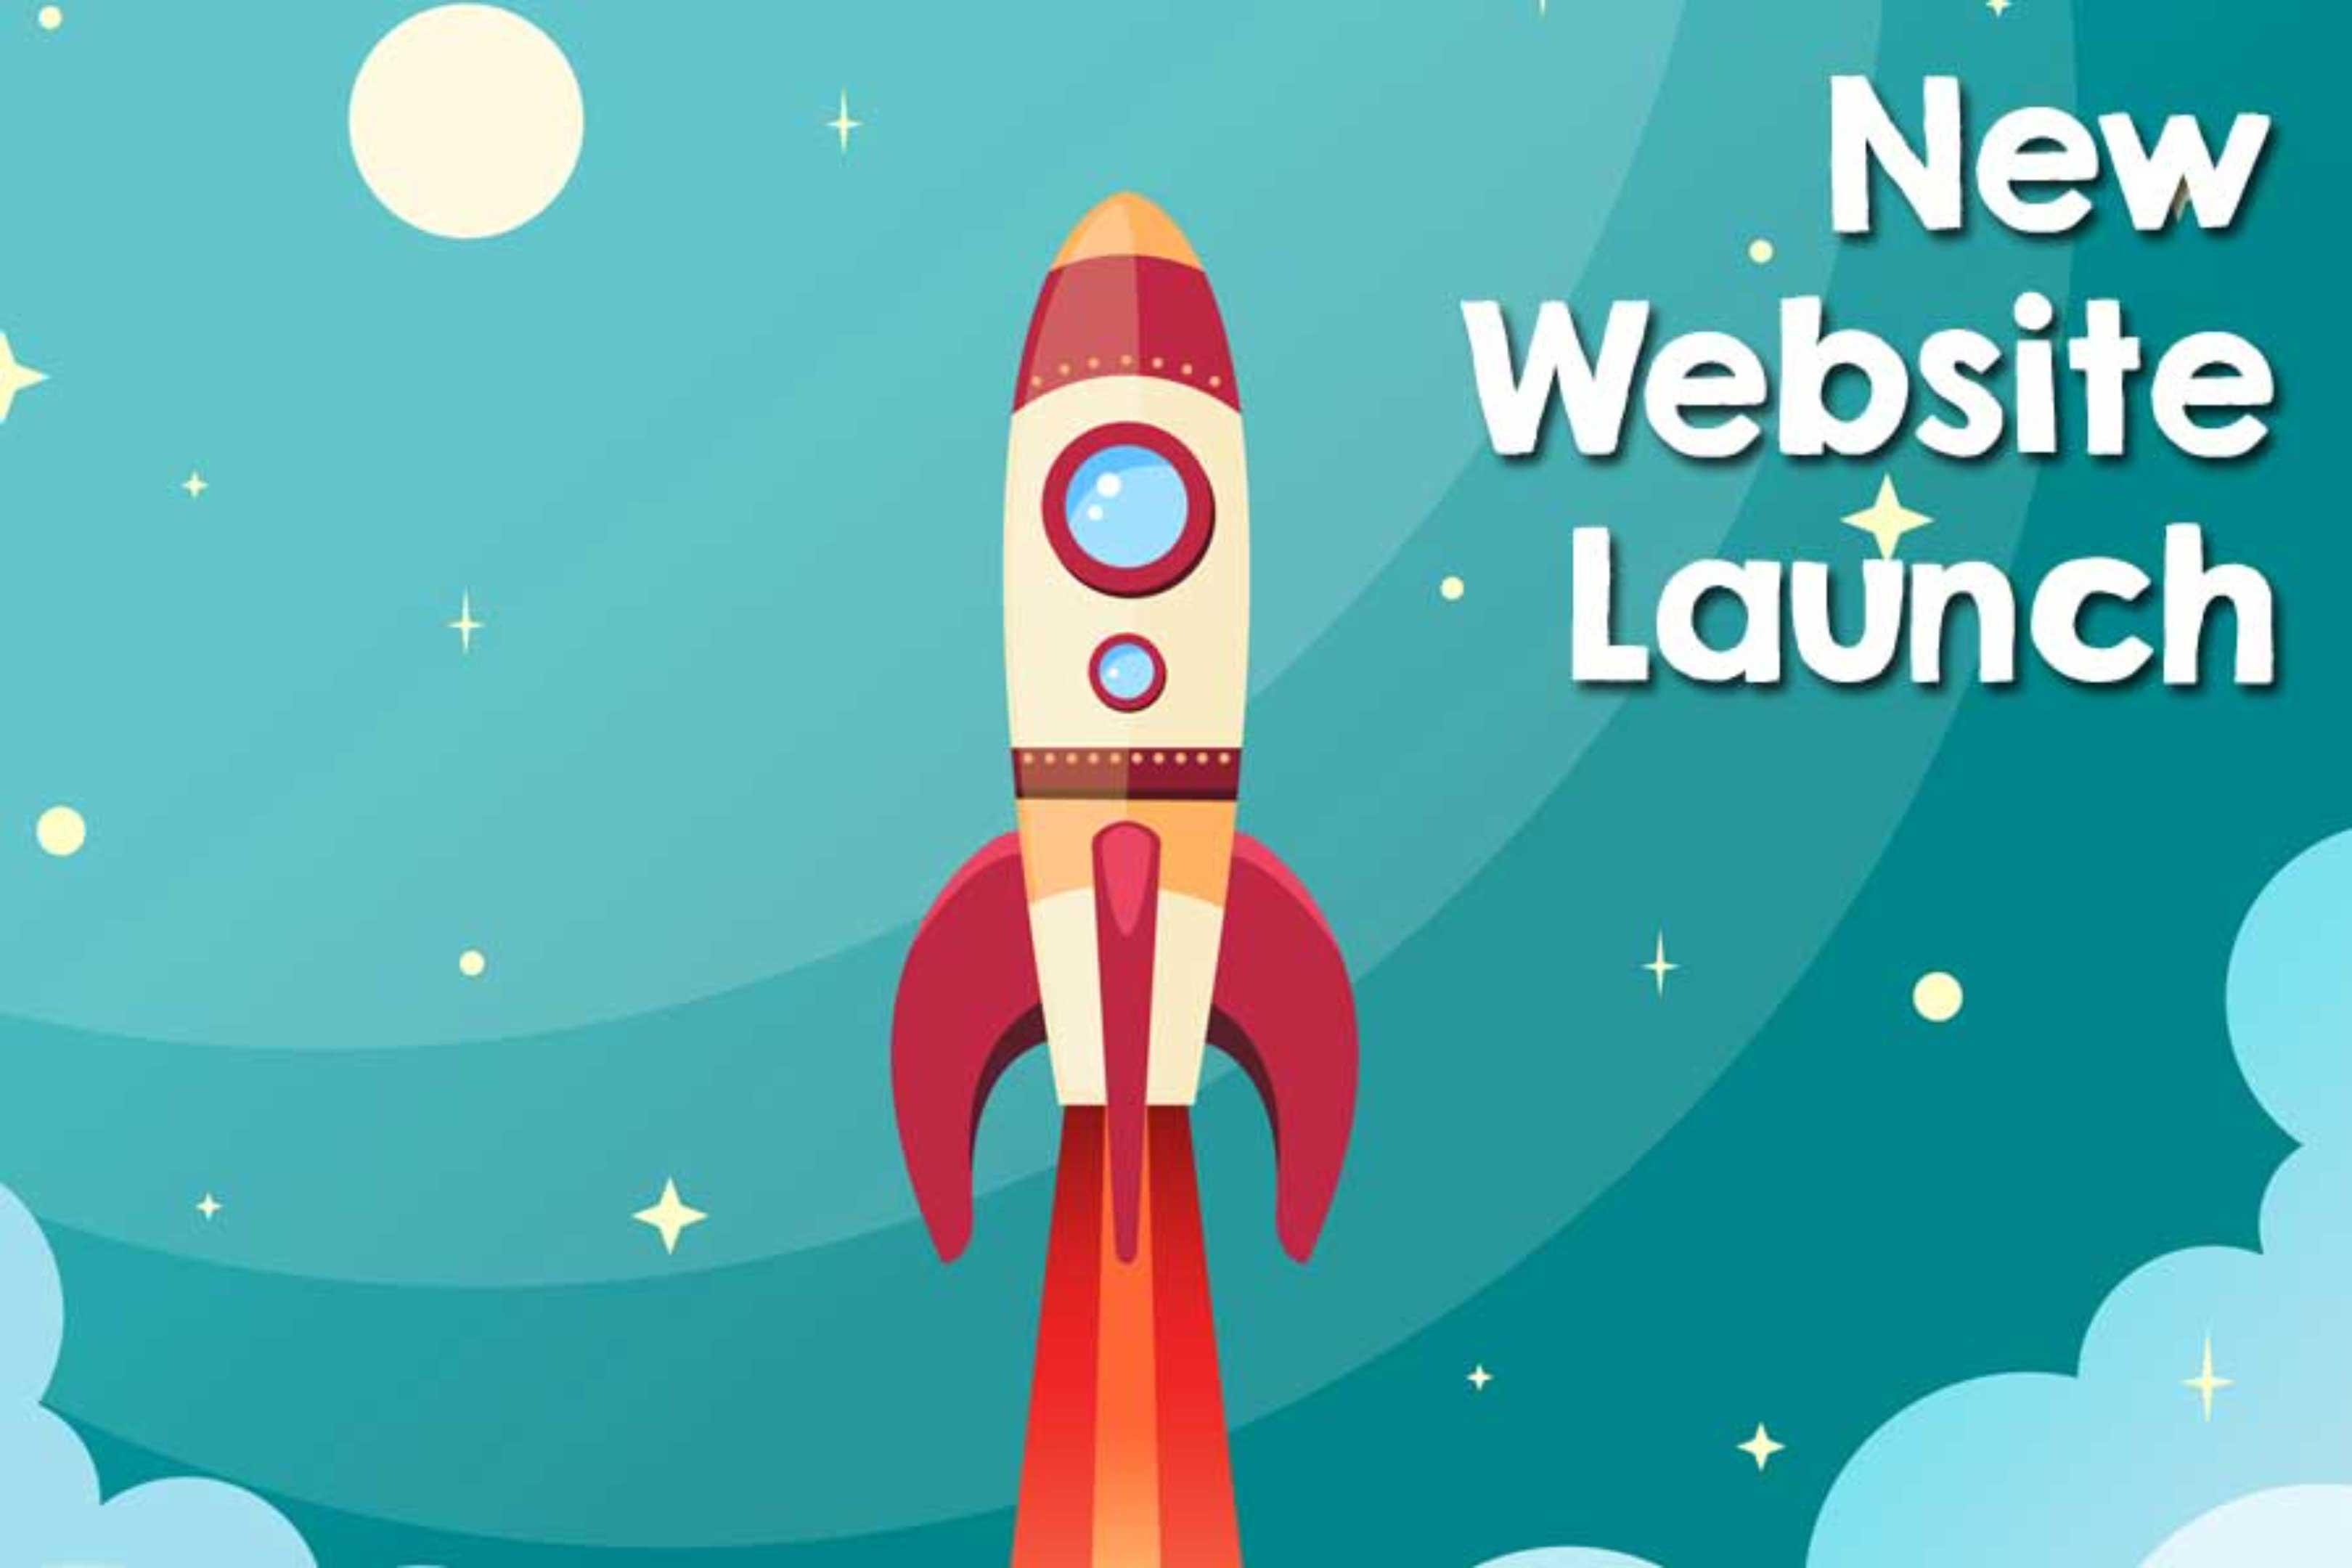 Presto Stantest Please To Launch A Fully Featured Website